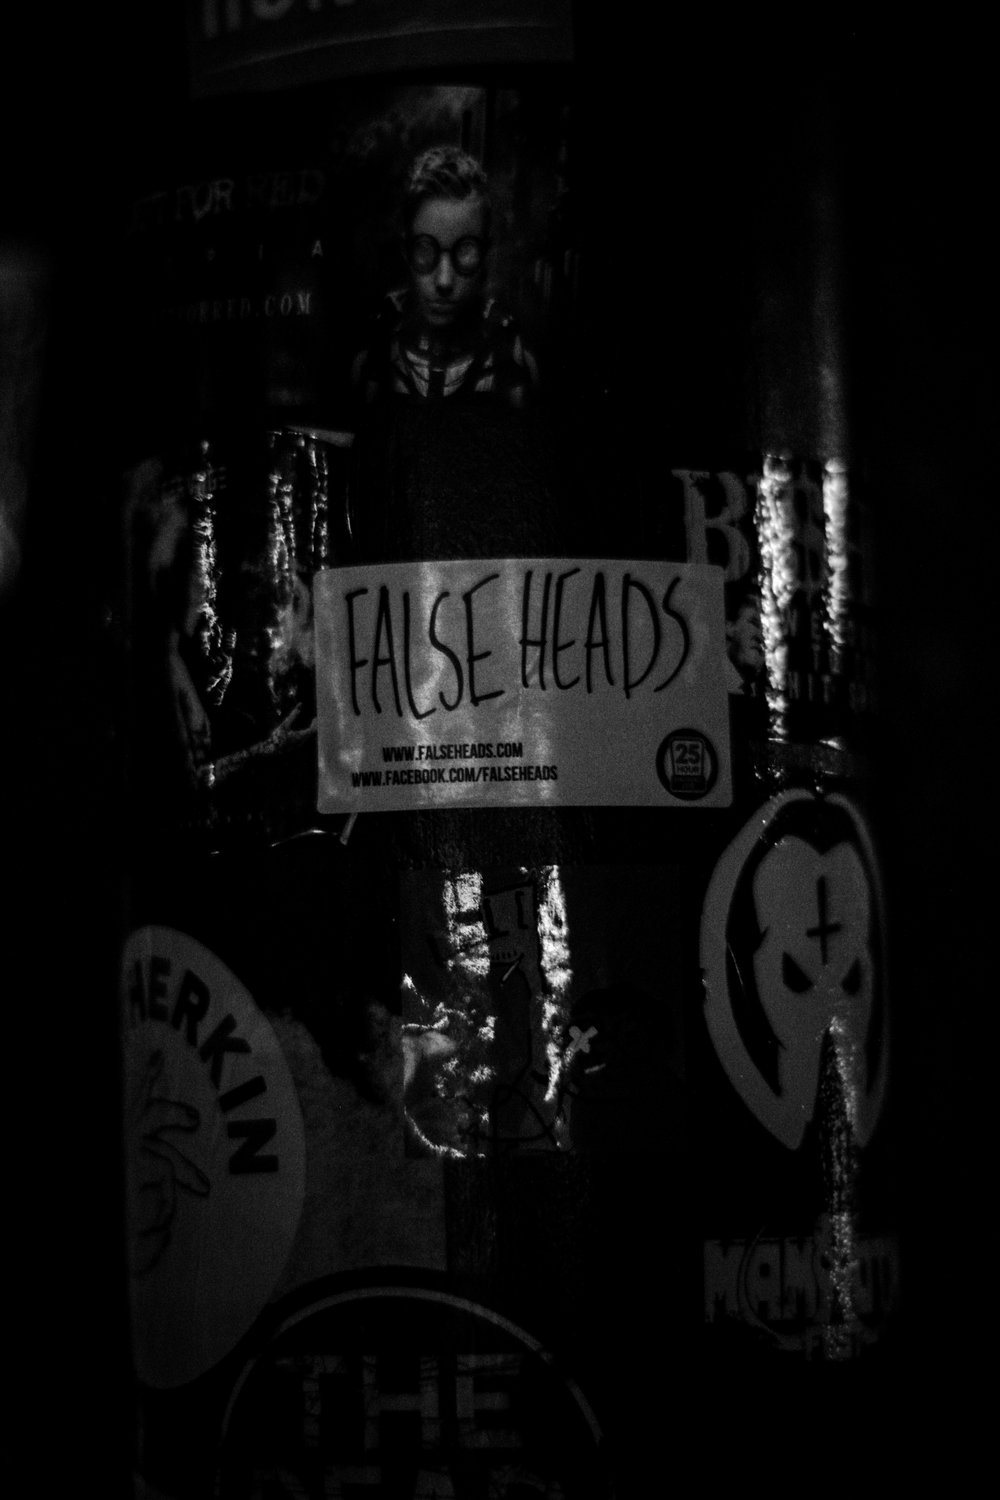 FALSE HEADS --- Random Shot (2).jpg